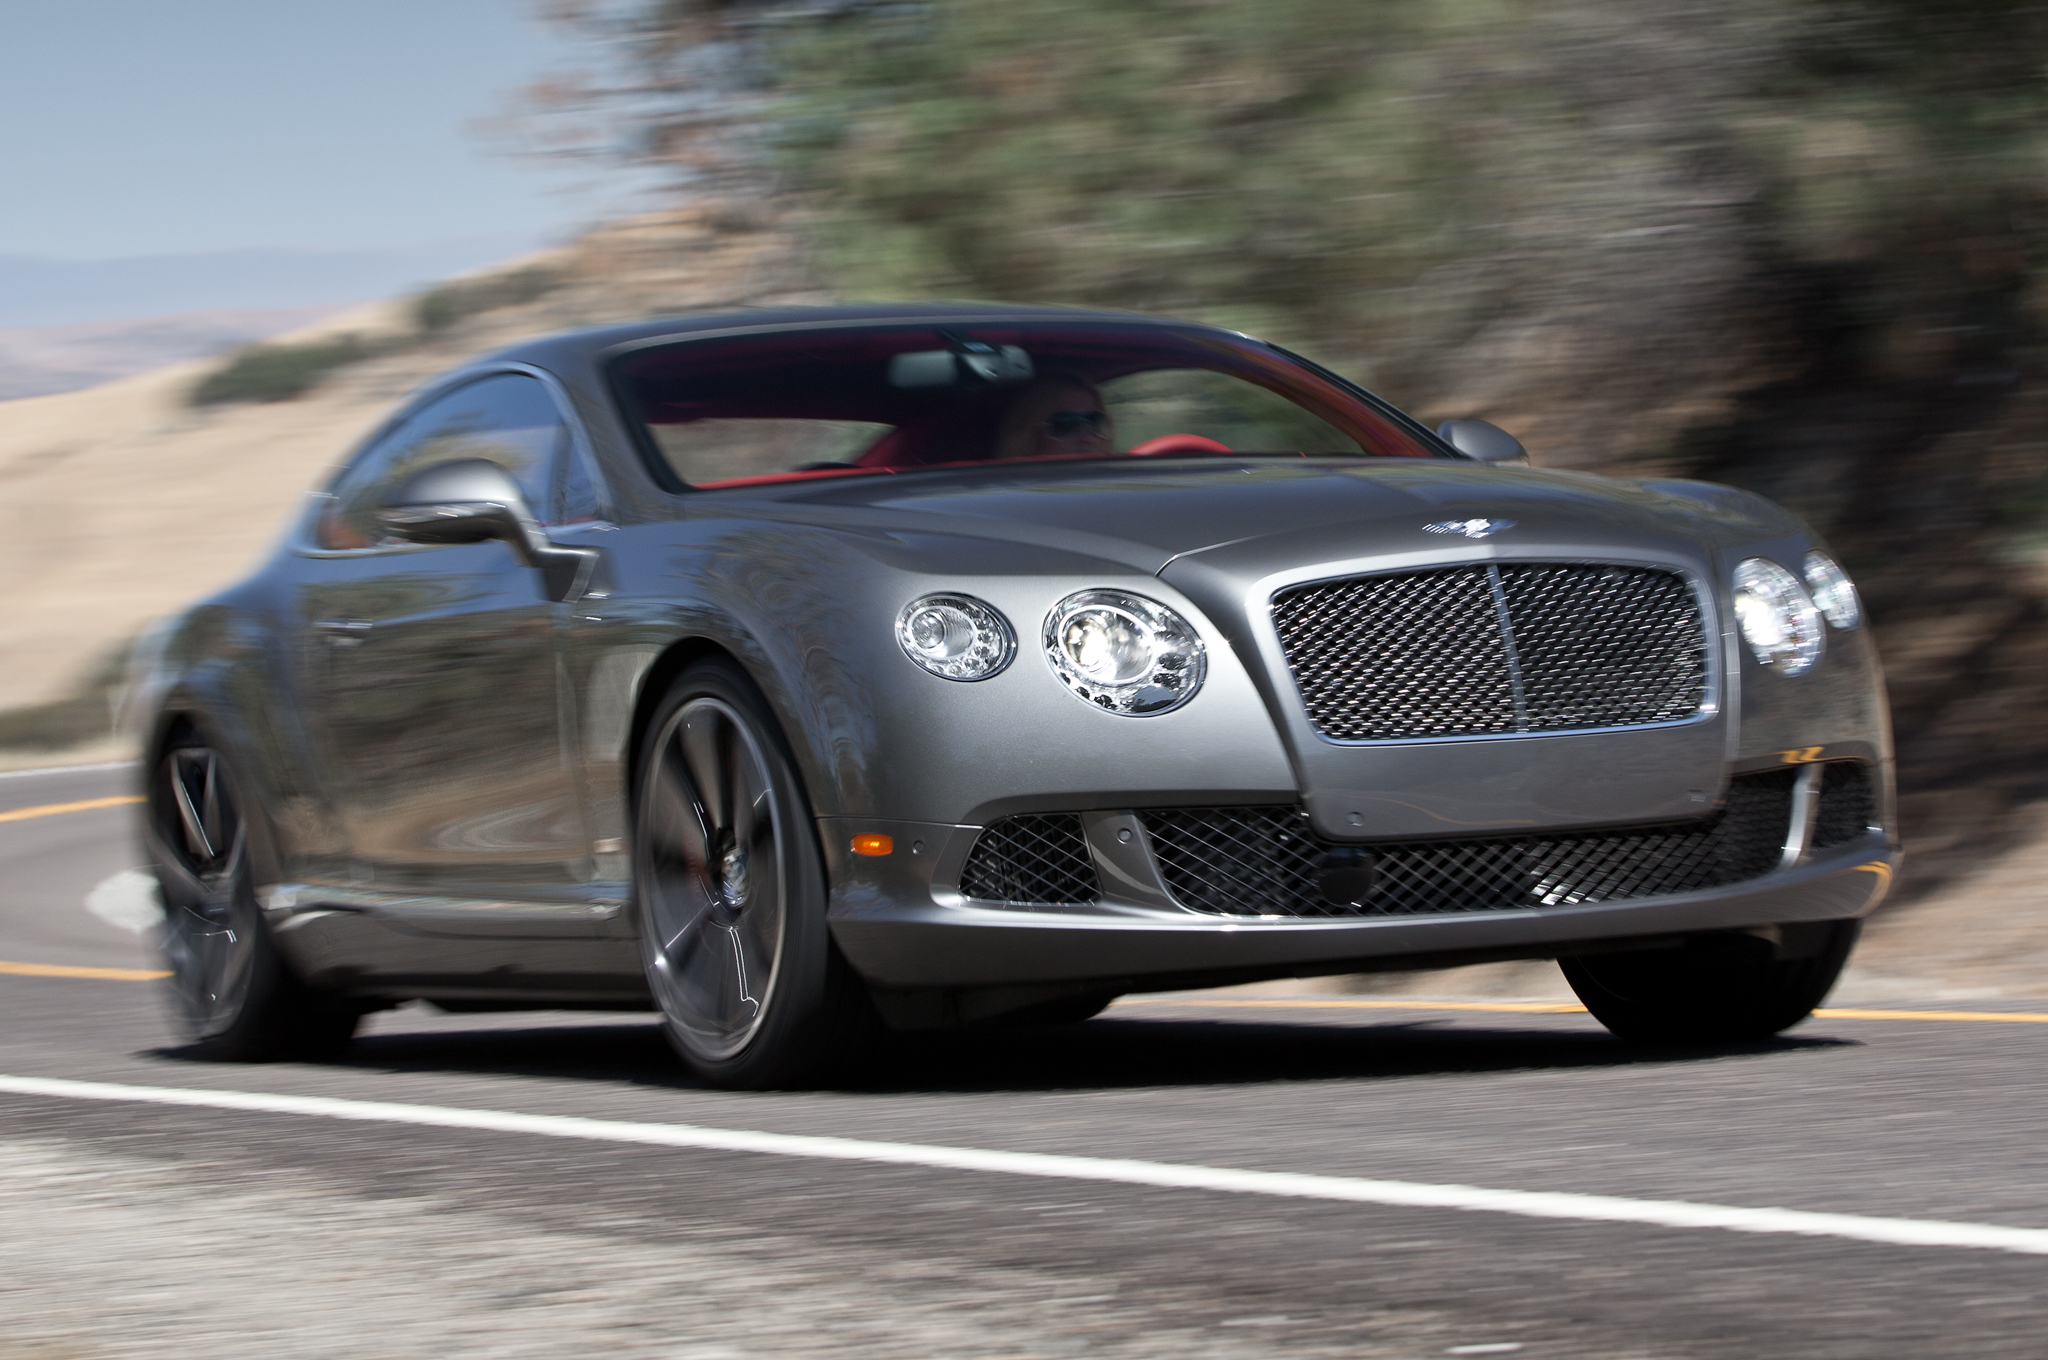 2013 Bentley Continental Gt Speed #1